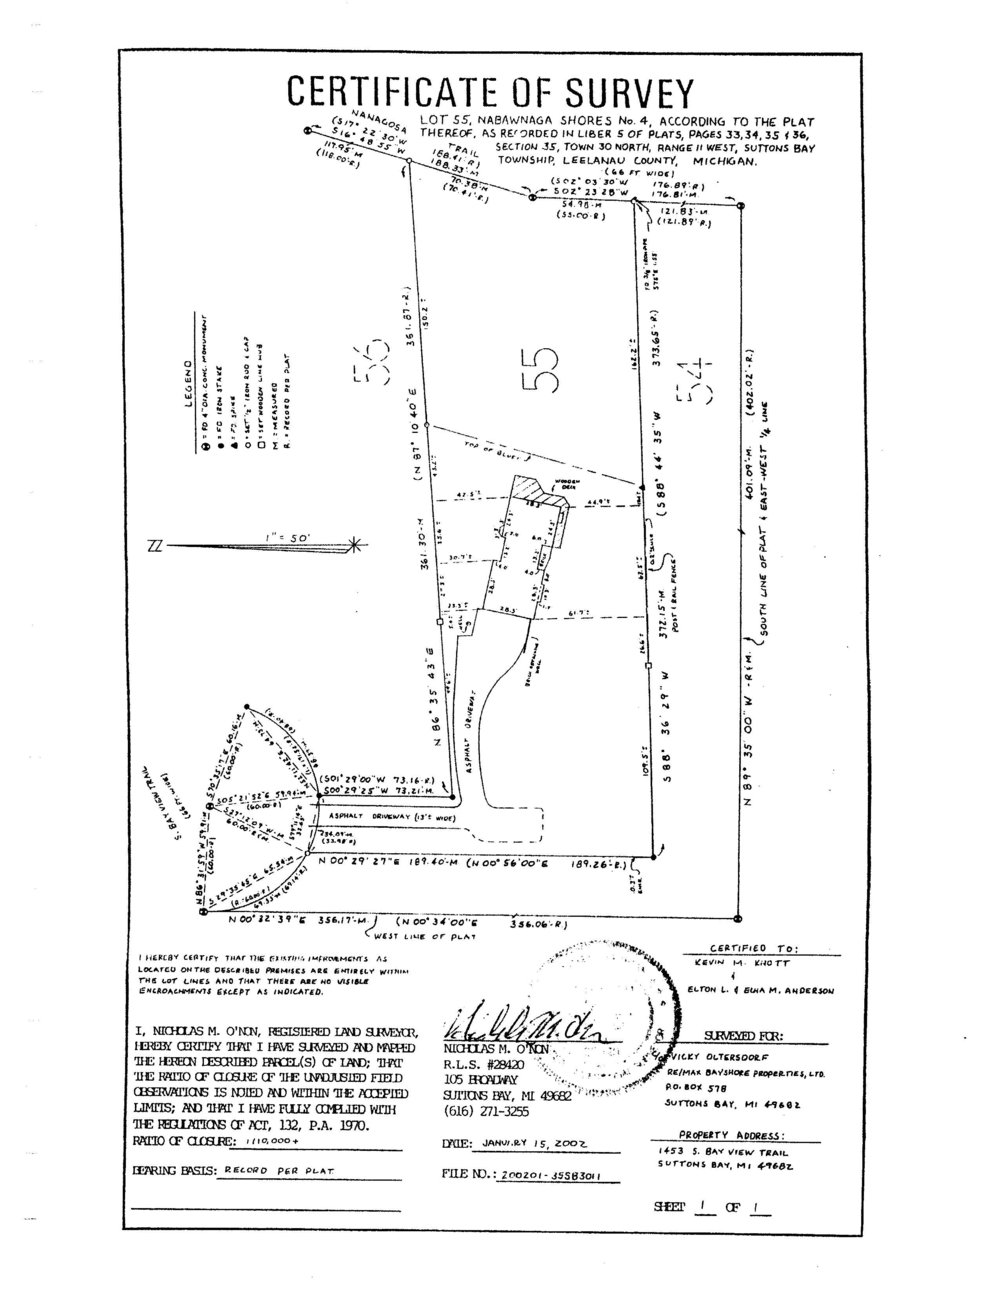 1453 S Bay View Trail, Suttons Bay – Marketing Packet by Oltersdorf Realty LLC, Leelanau County Real Estate (12).jpg